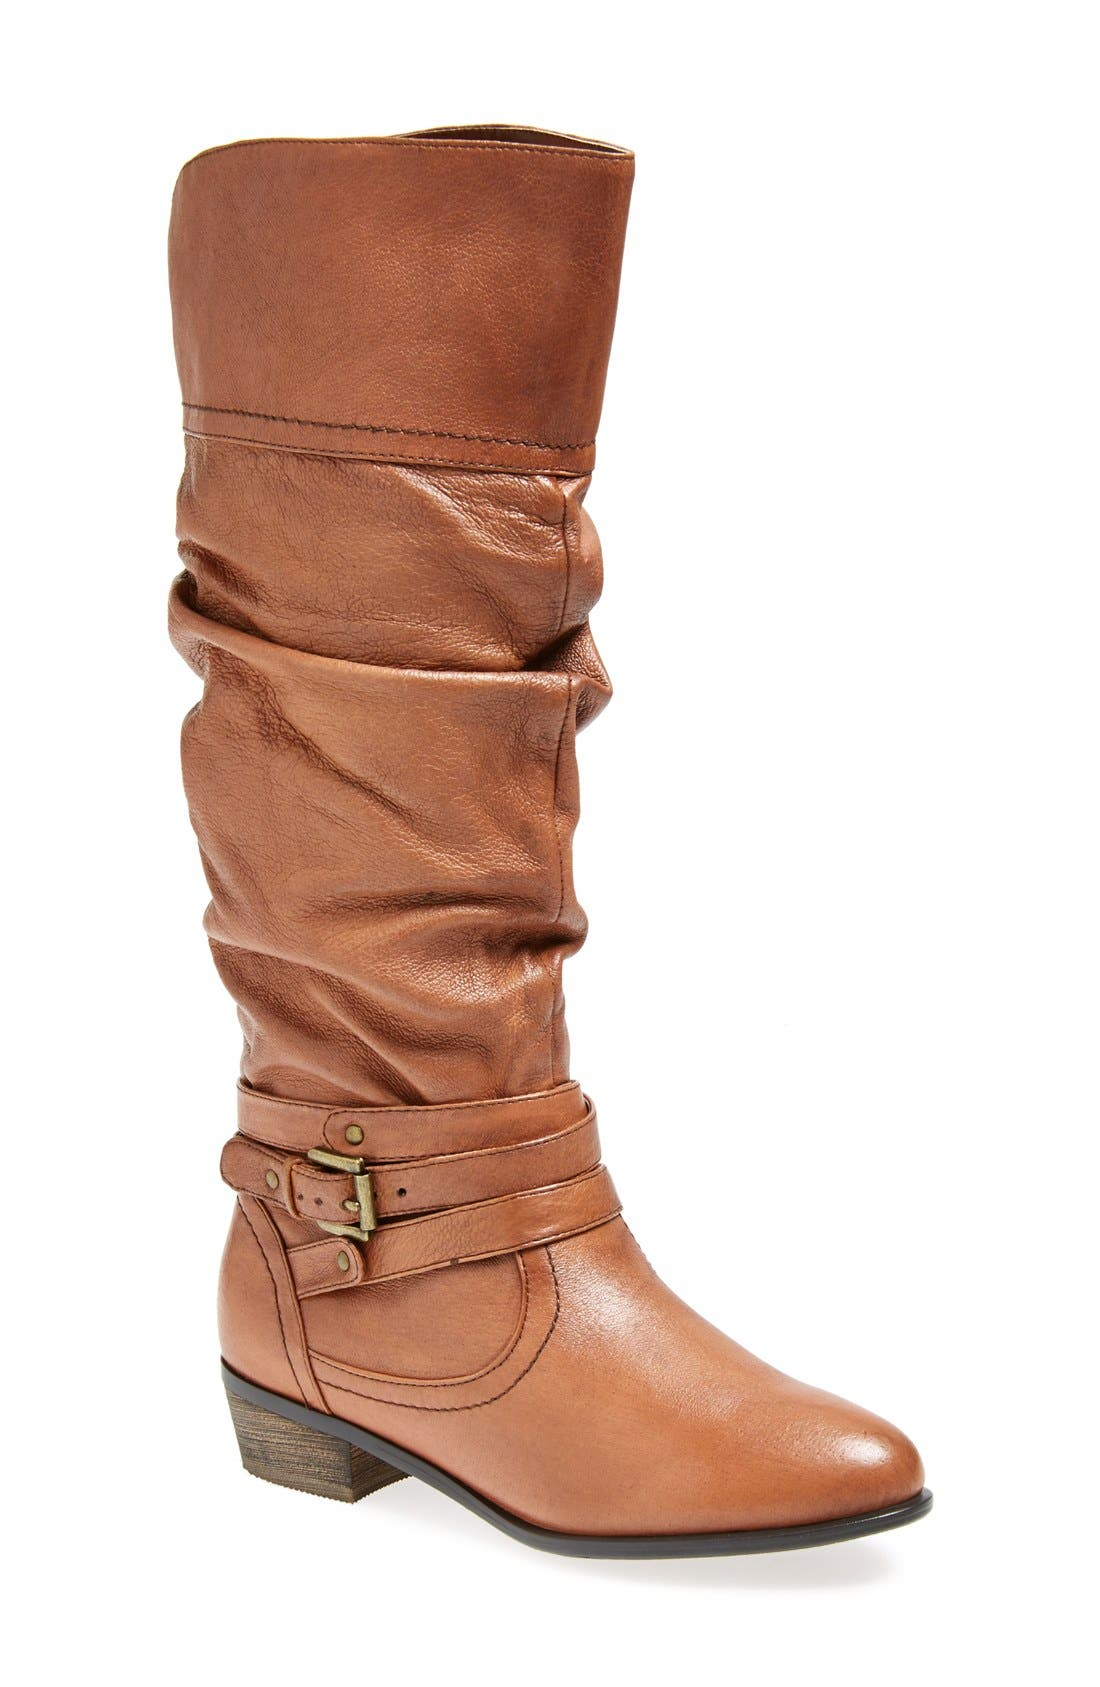 Main Image - Steve Madden 'Casstrow' Boot (Wide Calf) (Women)